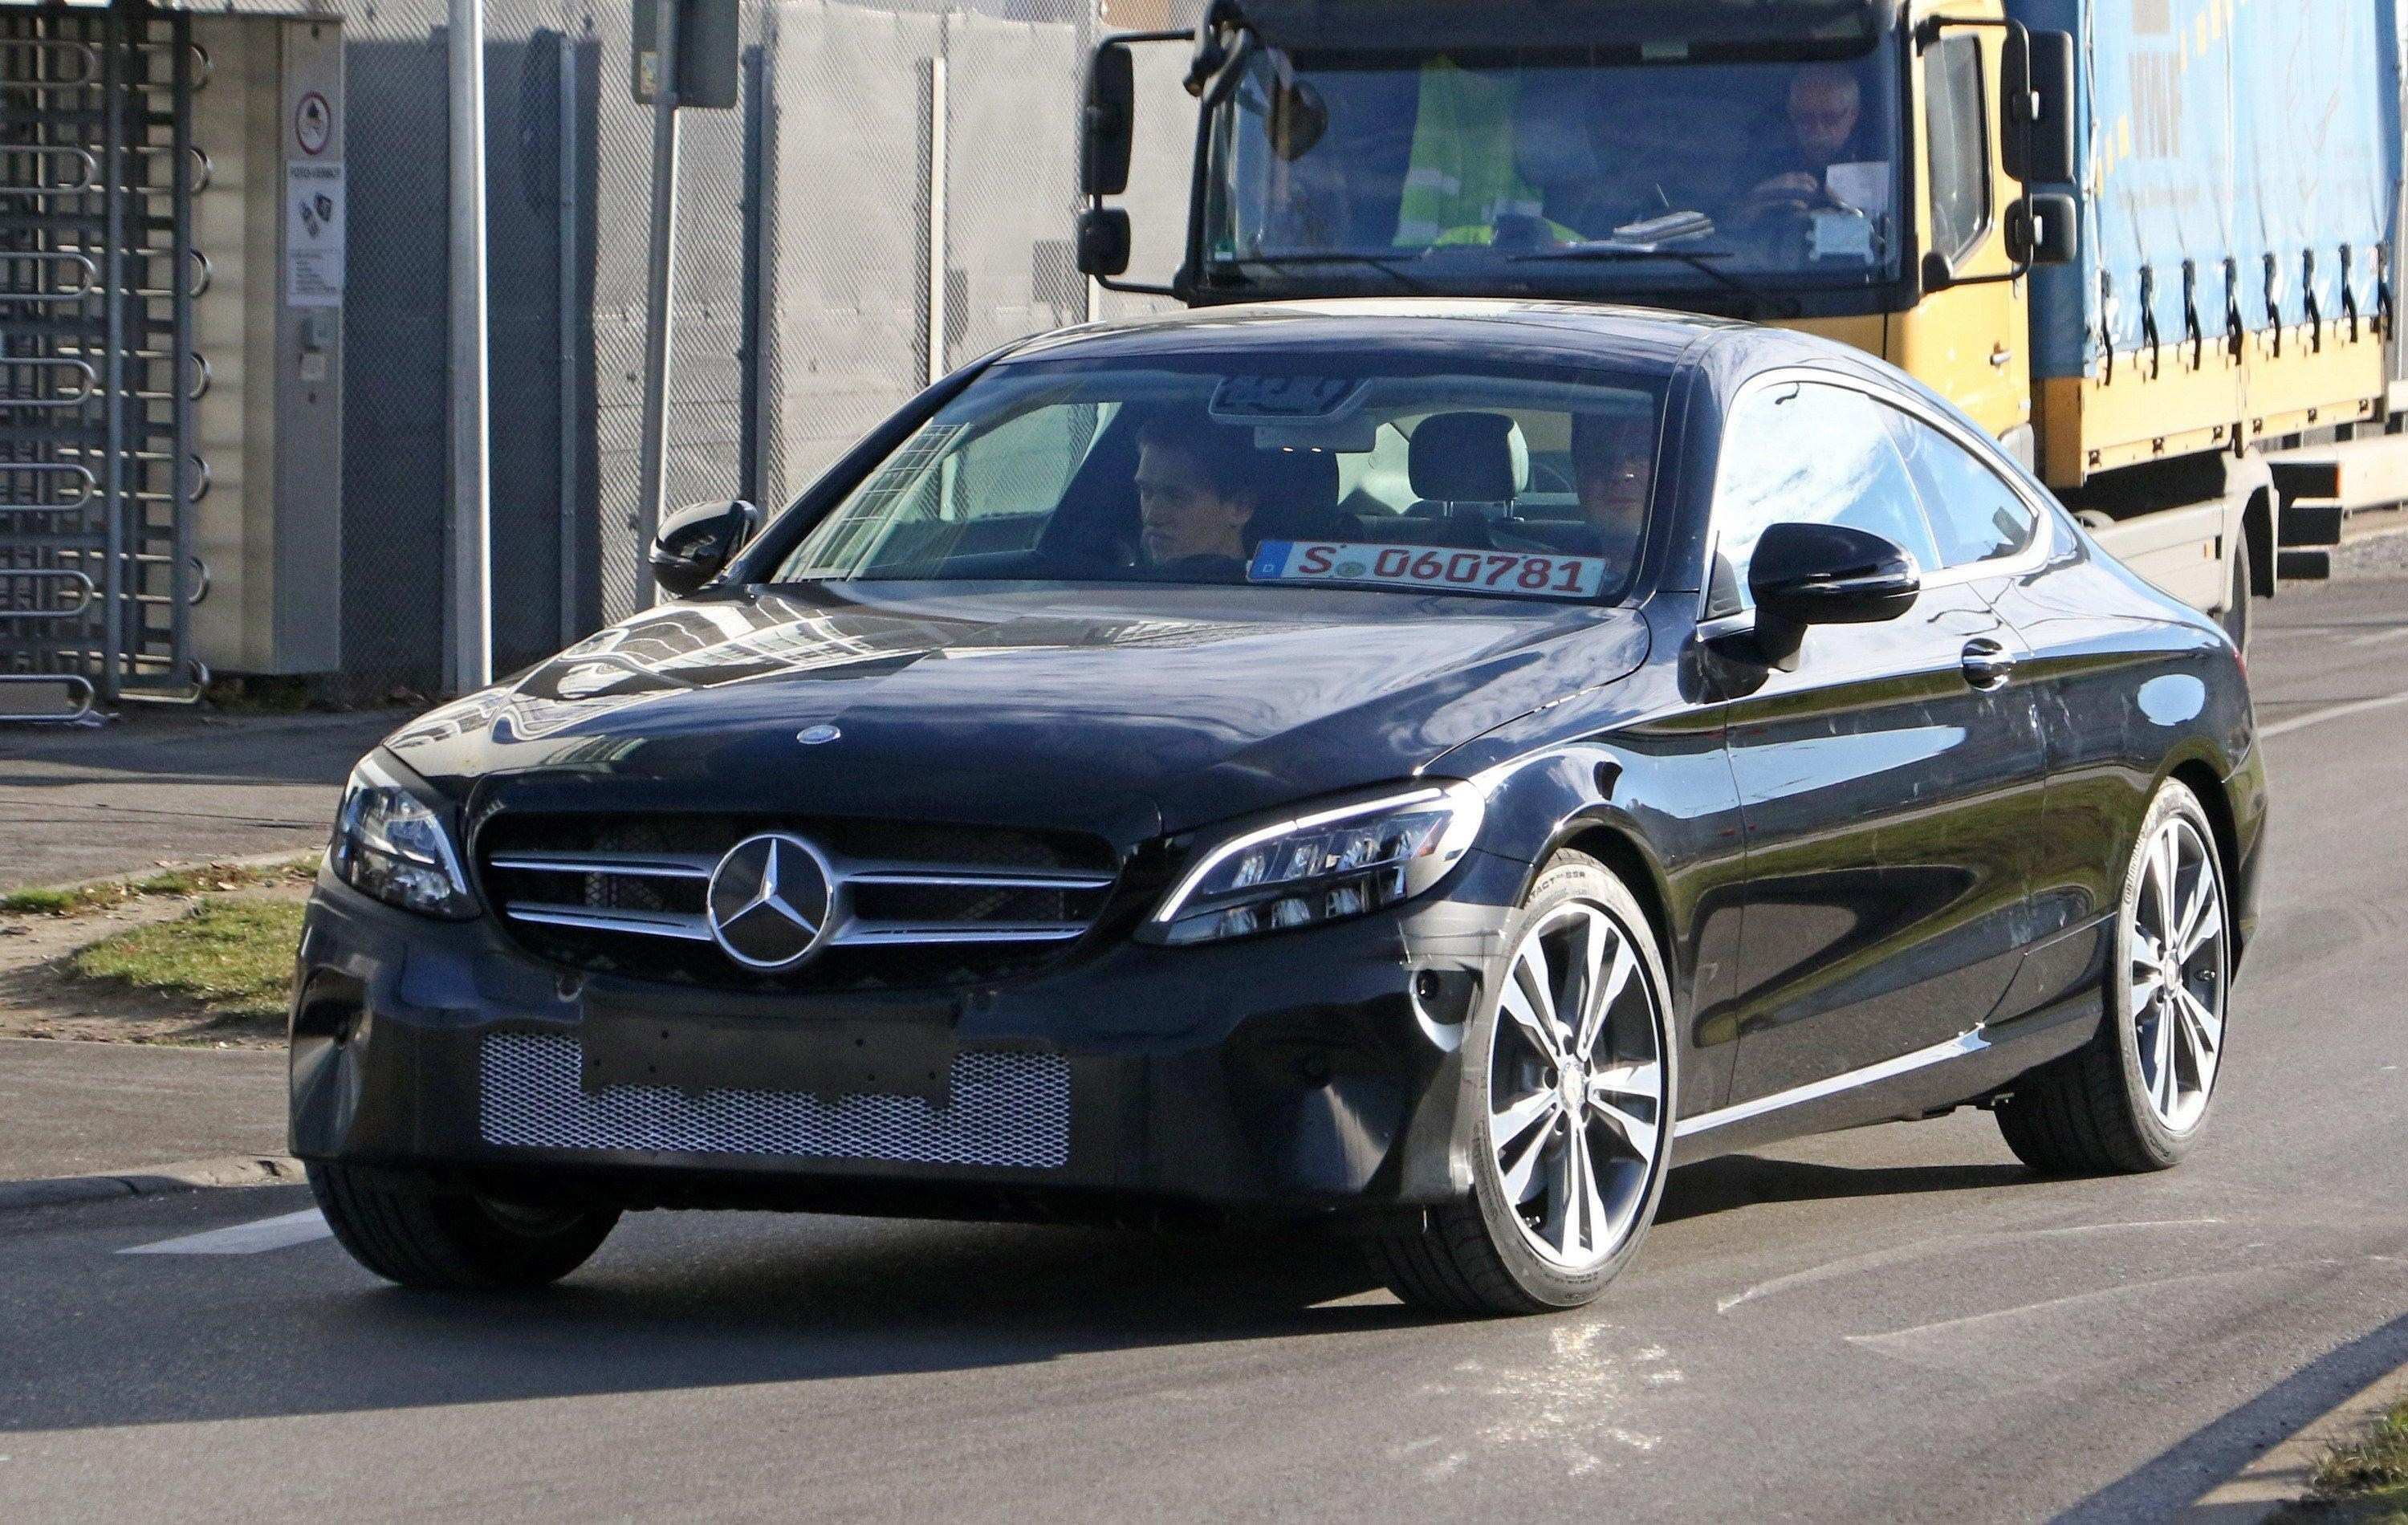 86 Gallery of C Class Mercedes 2019 Release Specs And Review Performance with C Class Mercedes 2019 Release Specs And Review